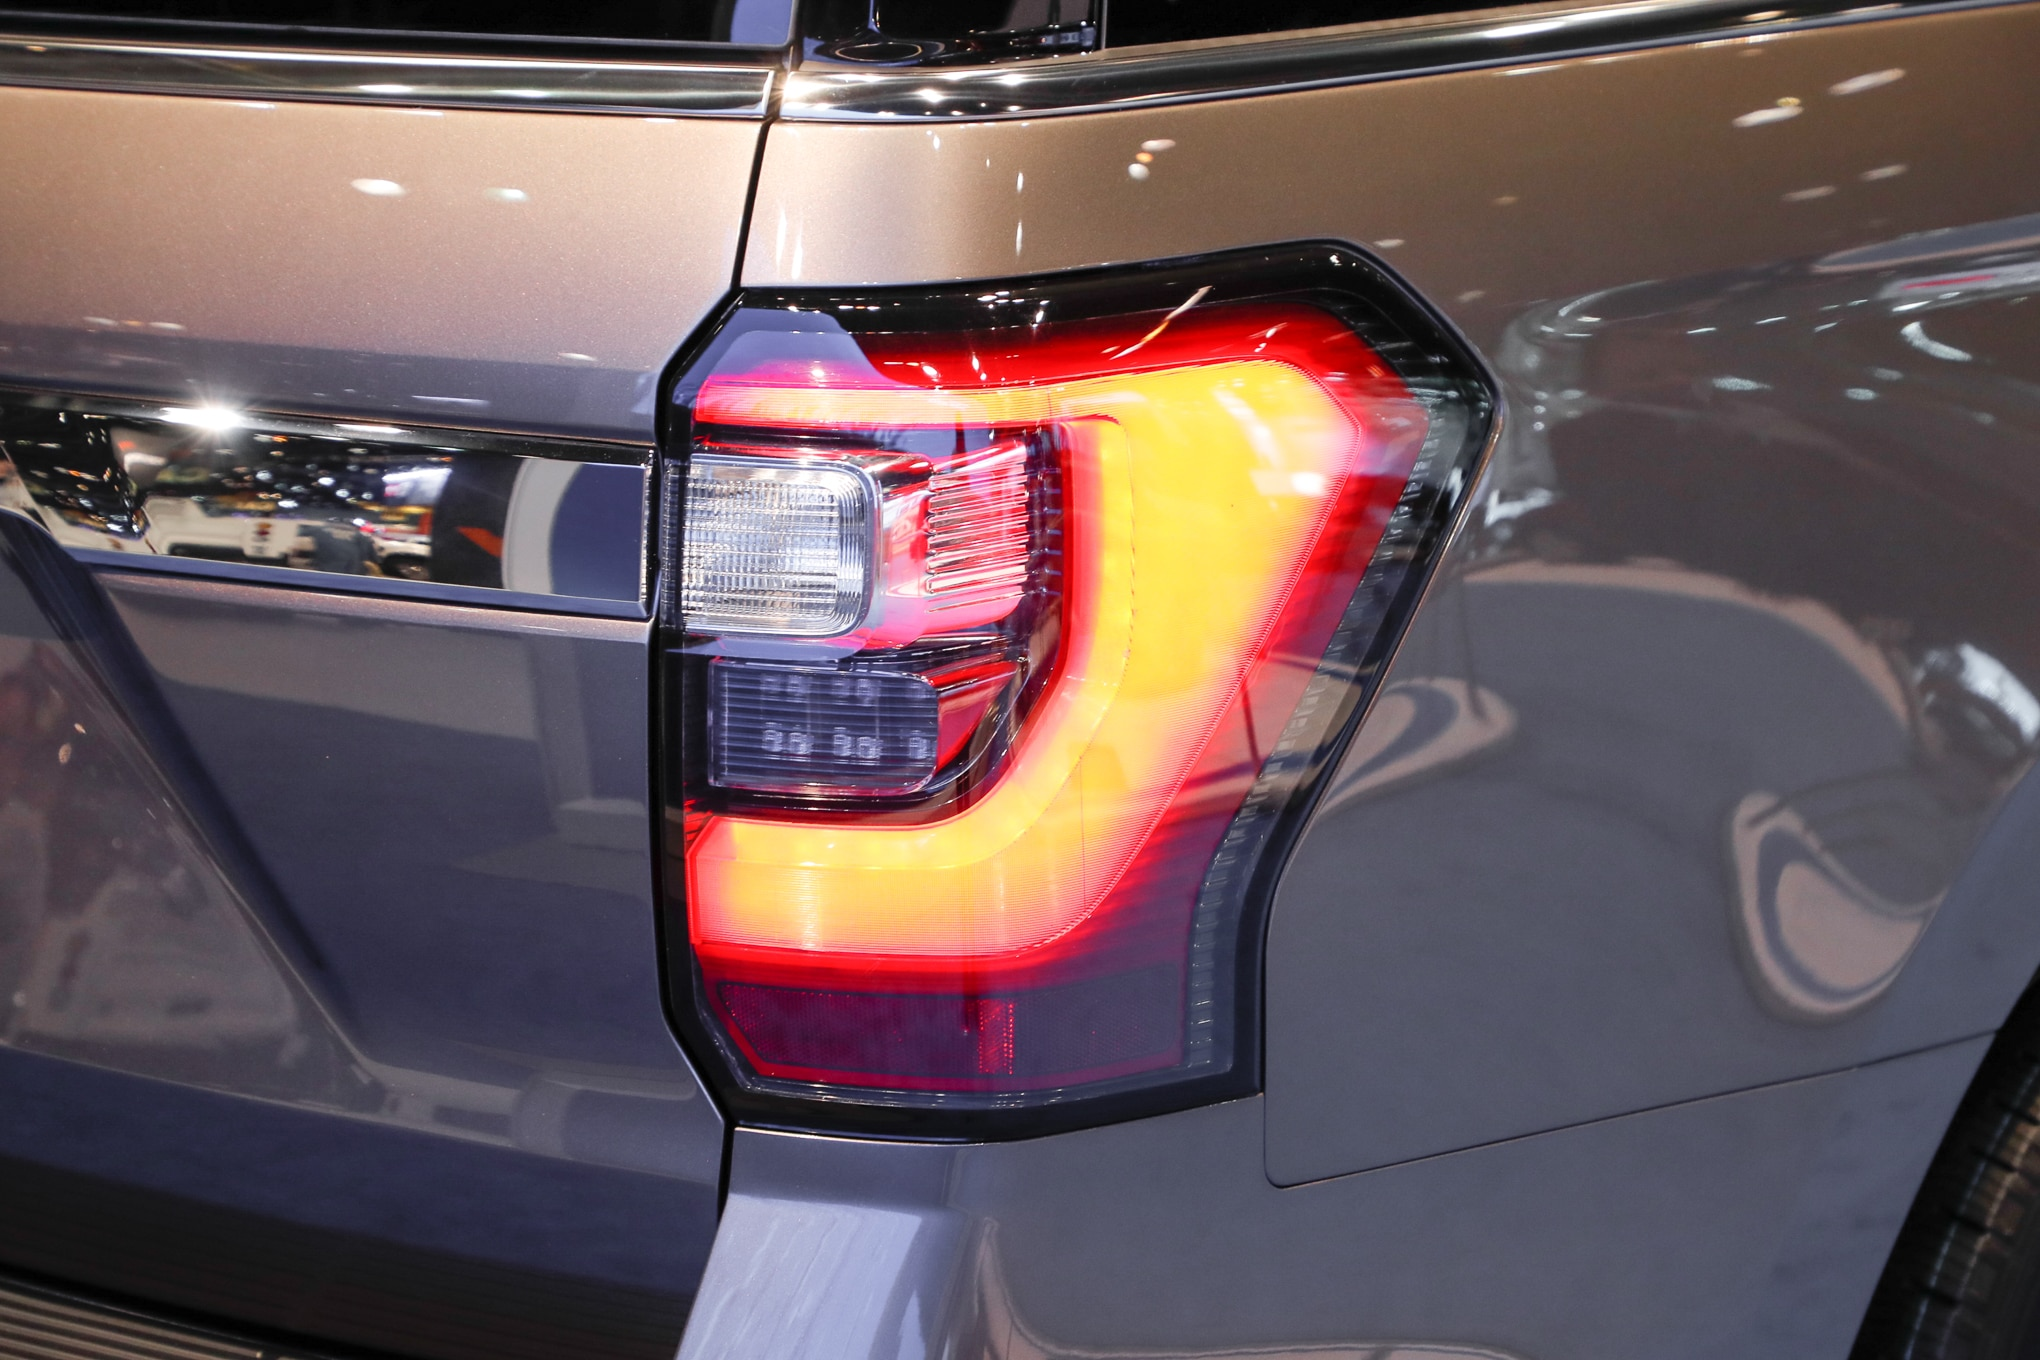 2018 Ford Expedition Limited Taillight 11 Mayo Miguel Cortina